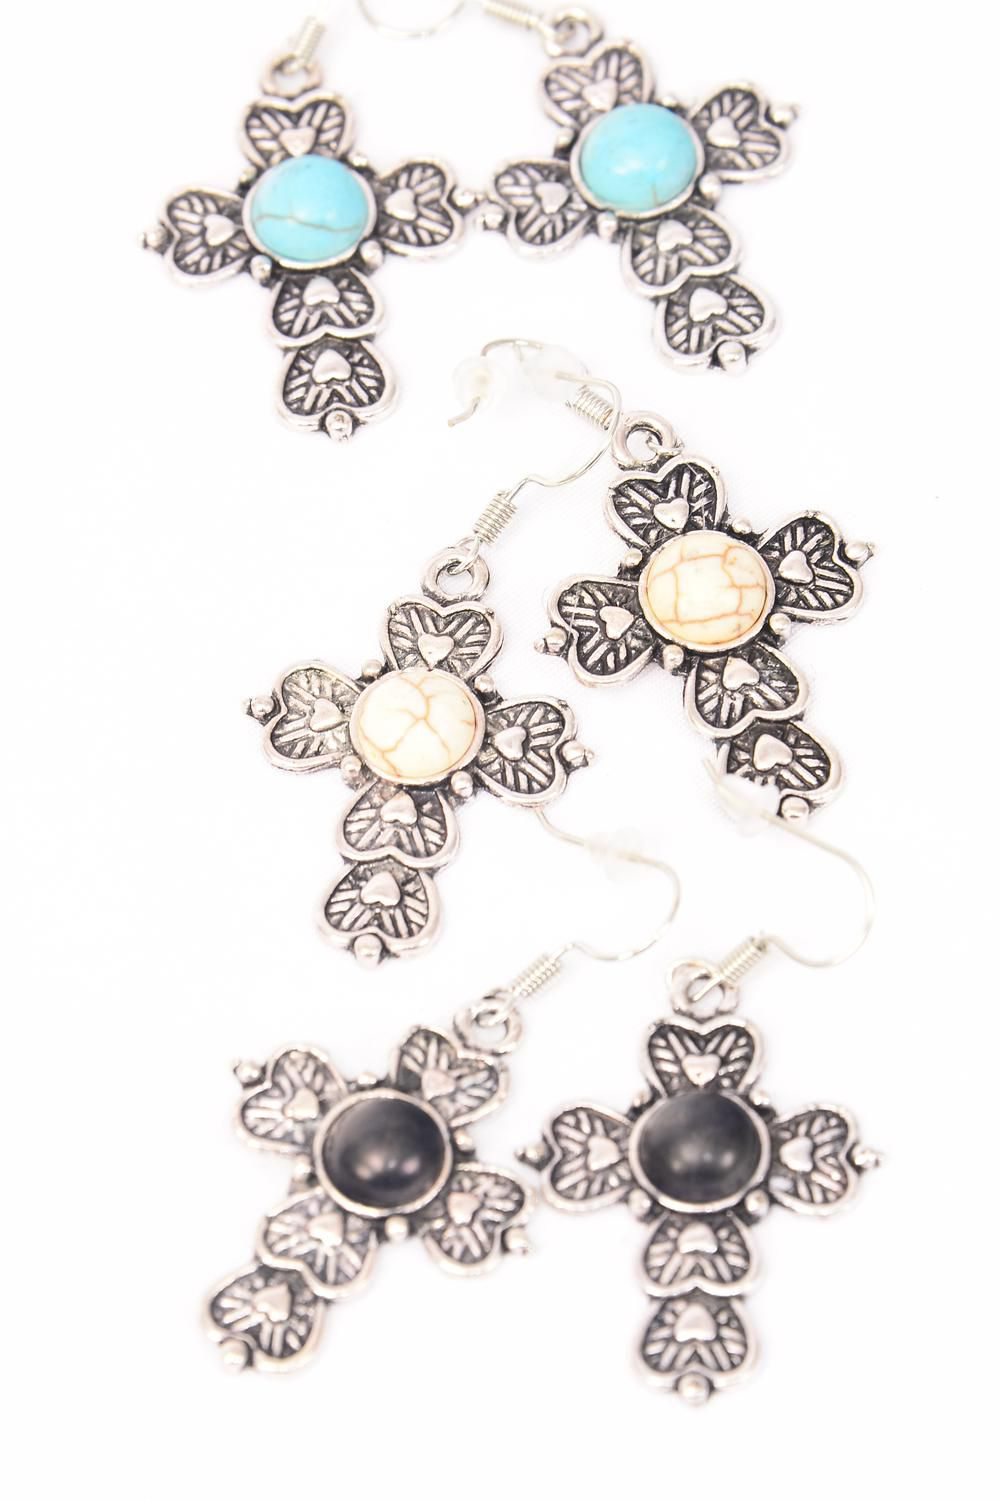 "Earrings Metal Antique Cross Semiprecious Stone/DZ match 75024 **Fish Hook** Size-1.25""x 1"" Wide,4 Black,4 Ivory,4 Turquoise Asst,Earring Card & OPP Bag & UPC Code -"